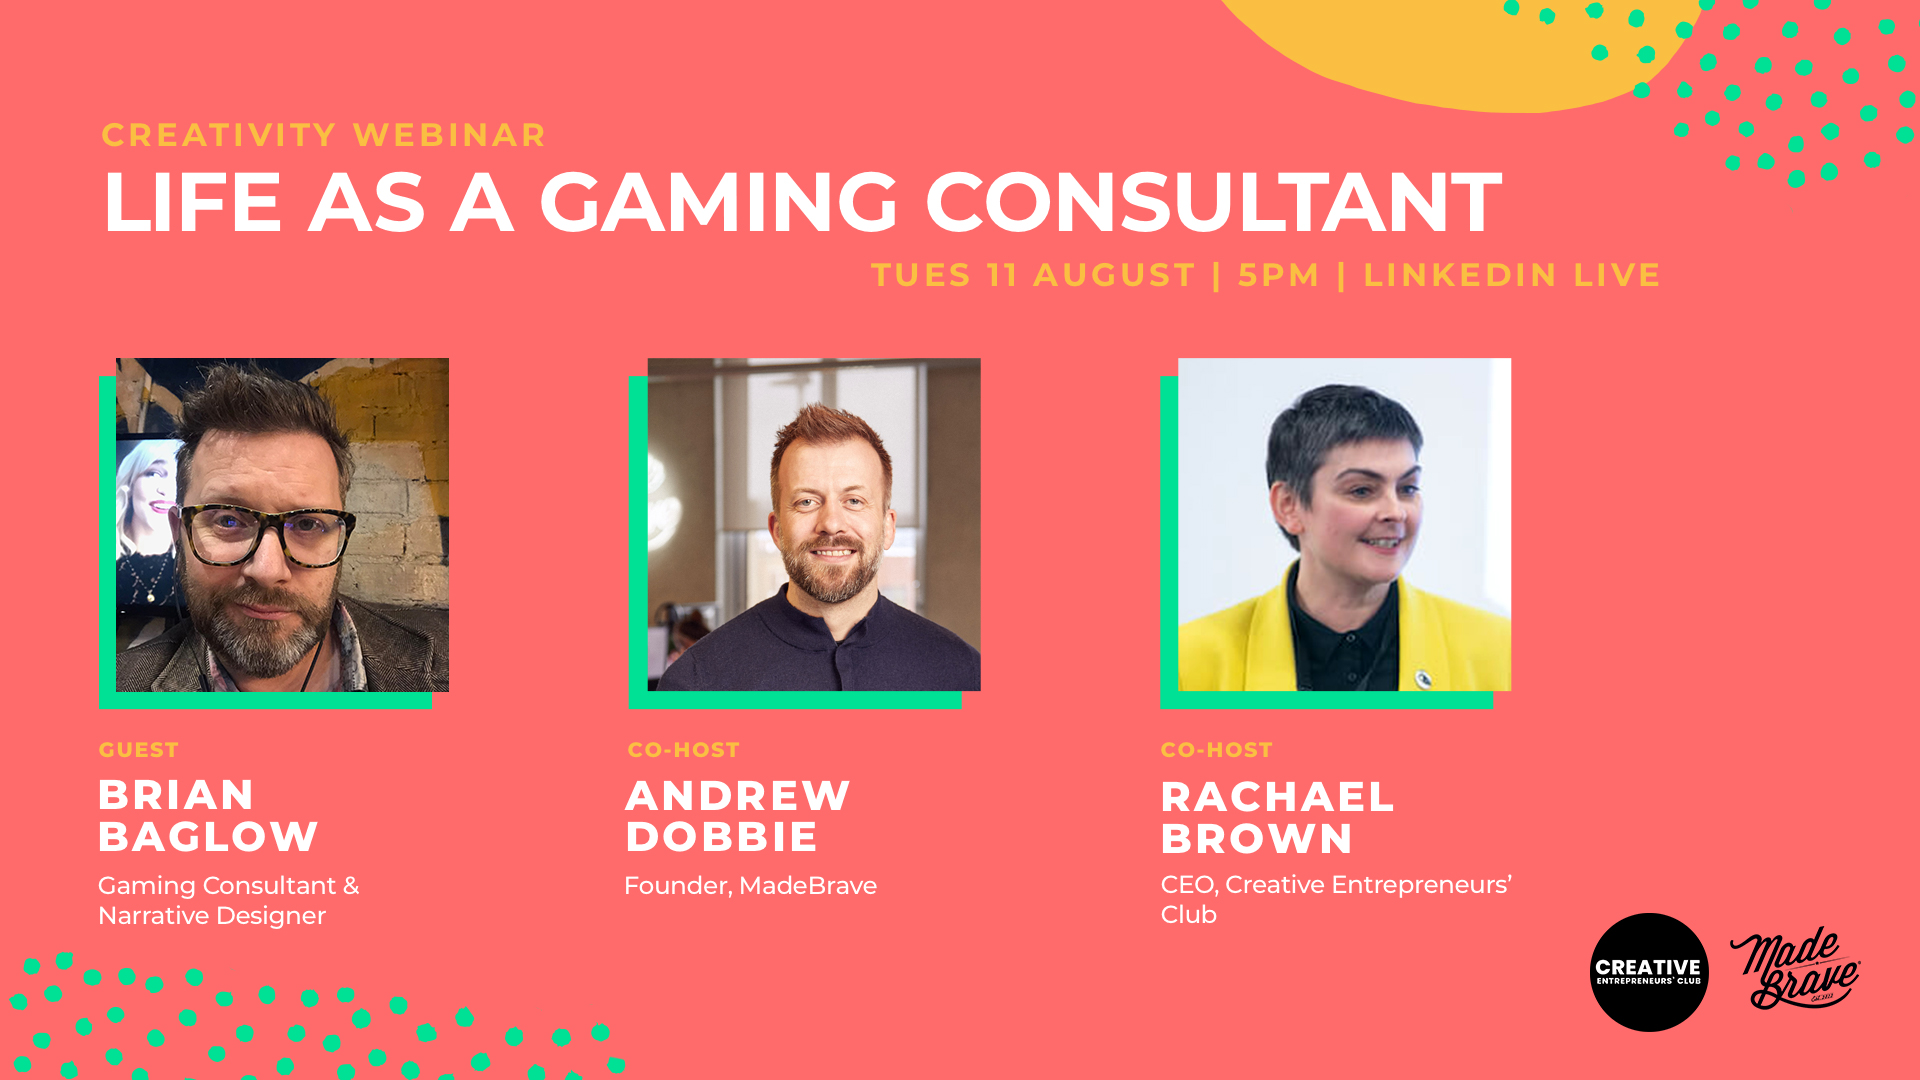 Life as a gaming consultant with Brian Baglow & MadeBrave